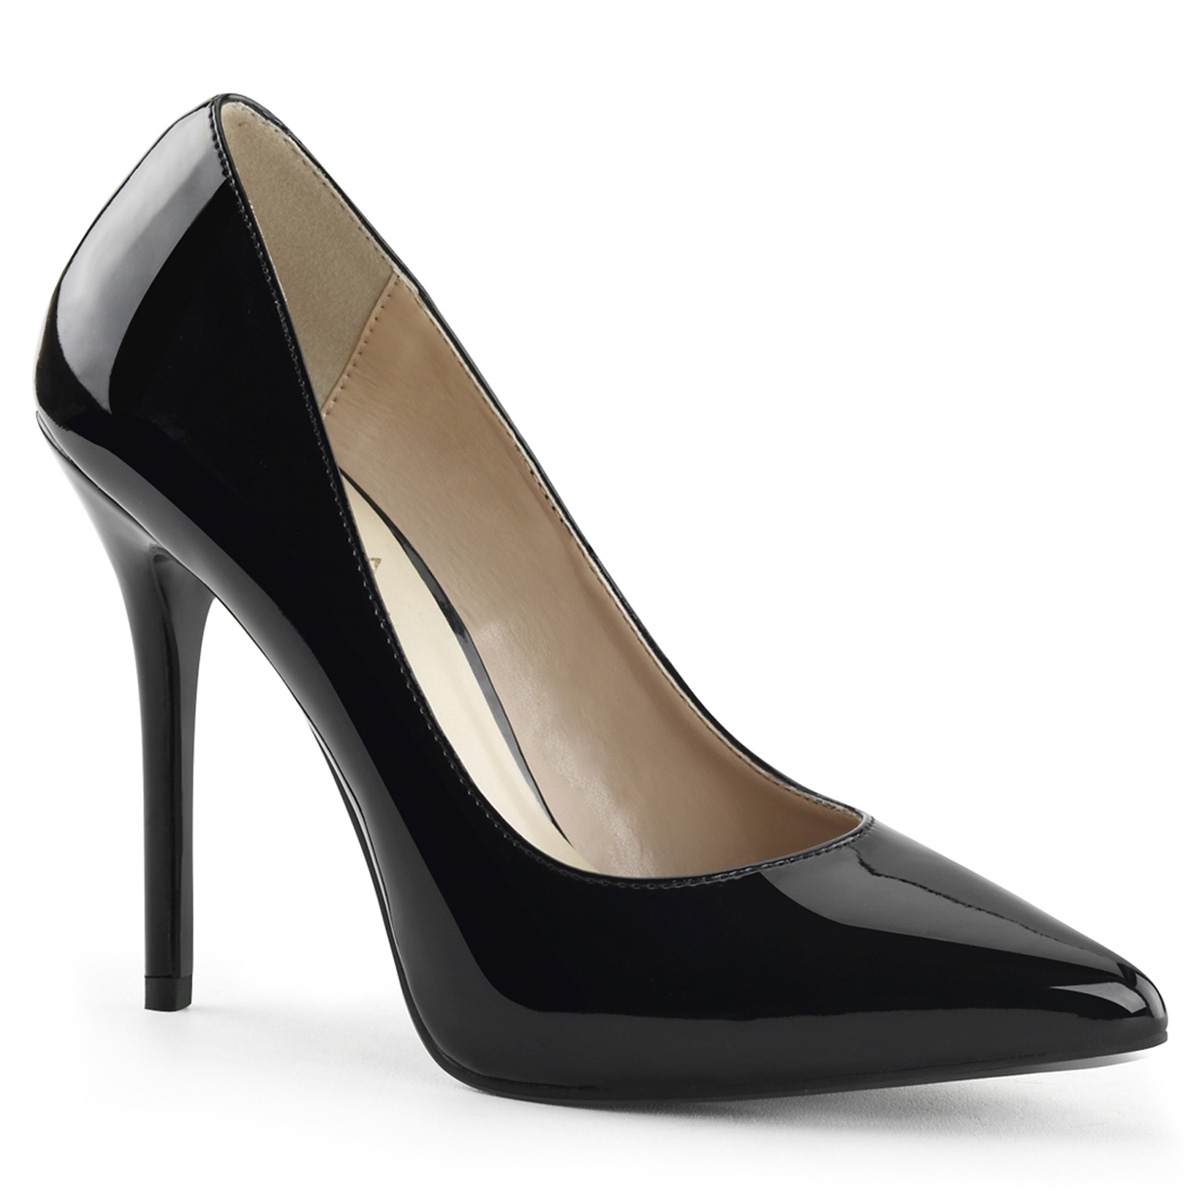 "Pleaser AMUSE-20 - Black Patent - 5"" Heel, 3/8"" Hidden Platform Pump Pump in New Arrivals"